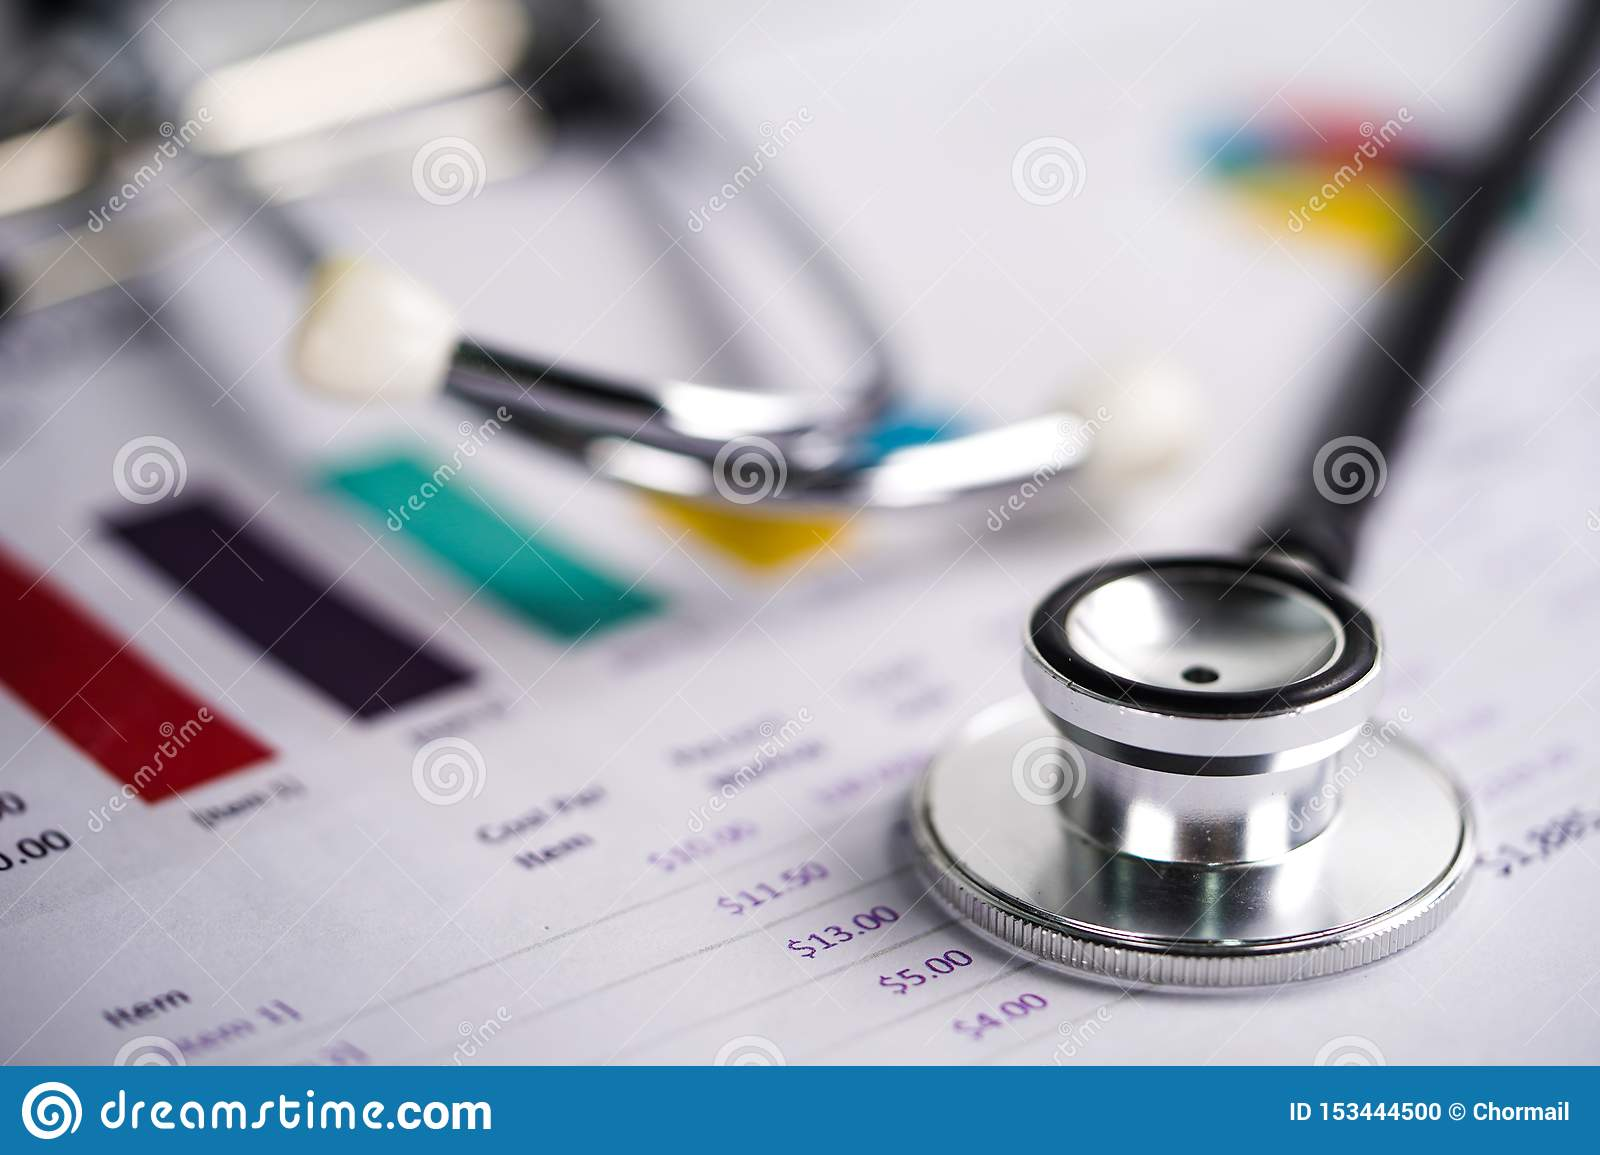 Stethoscope, Charts and Graphs spreadsheet paper, Finance, Account, Statistics